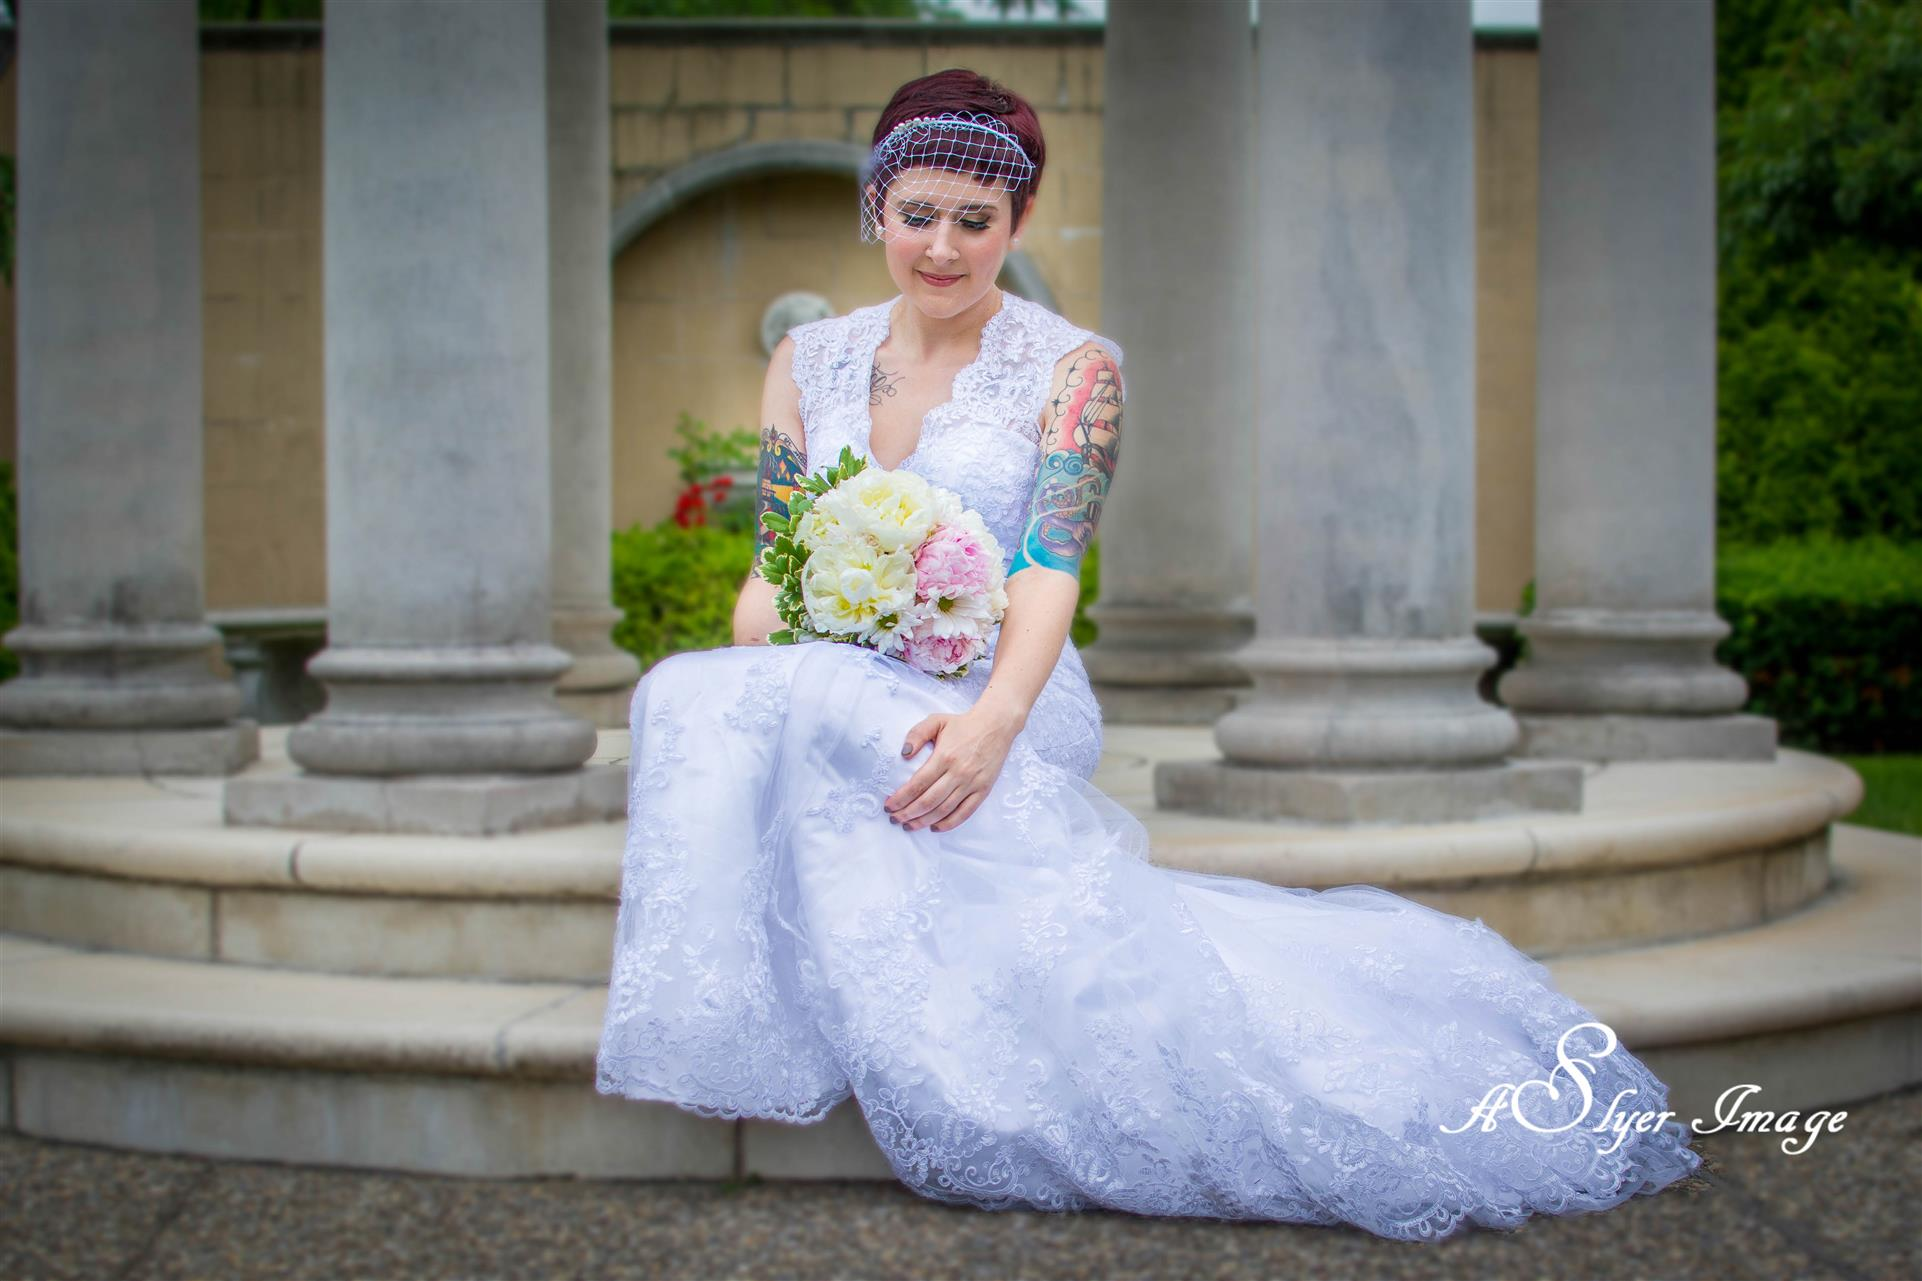 Bride holding bouquet on steps in front of columns